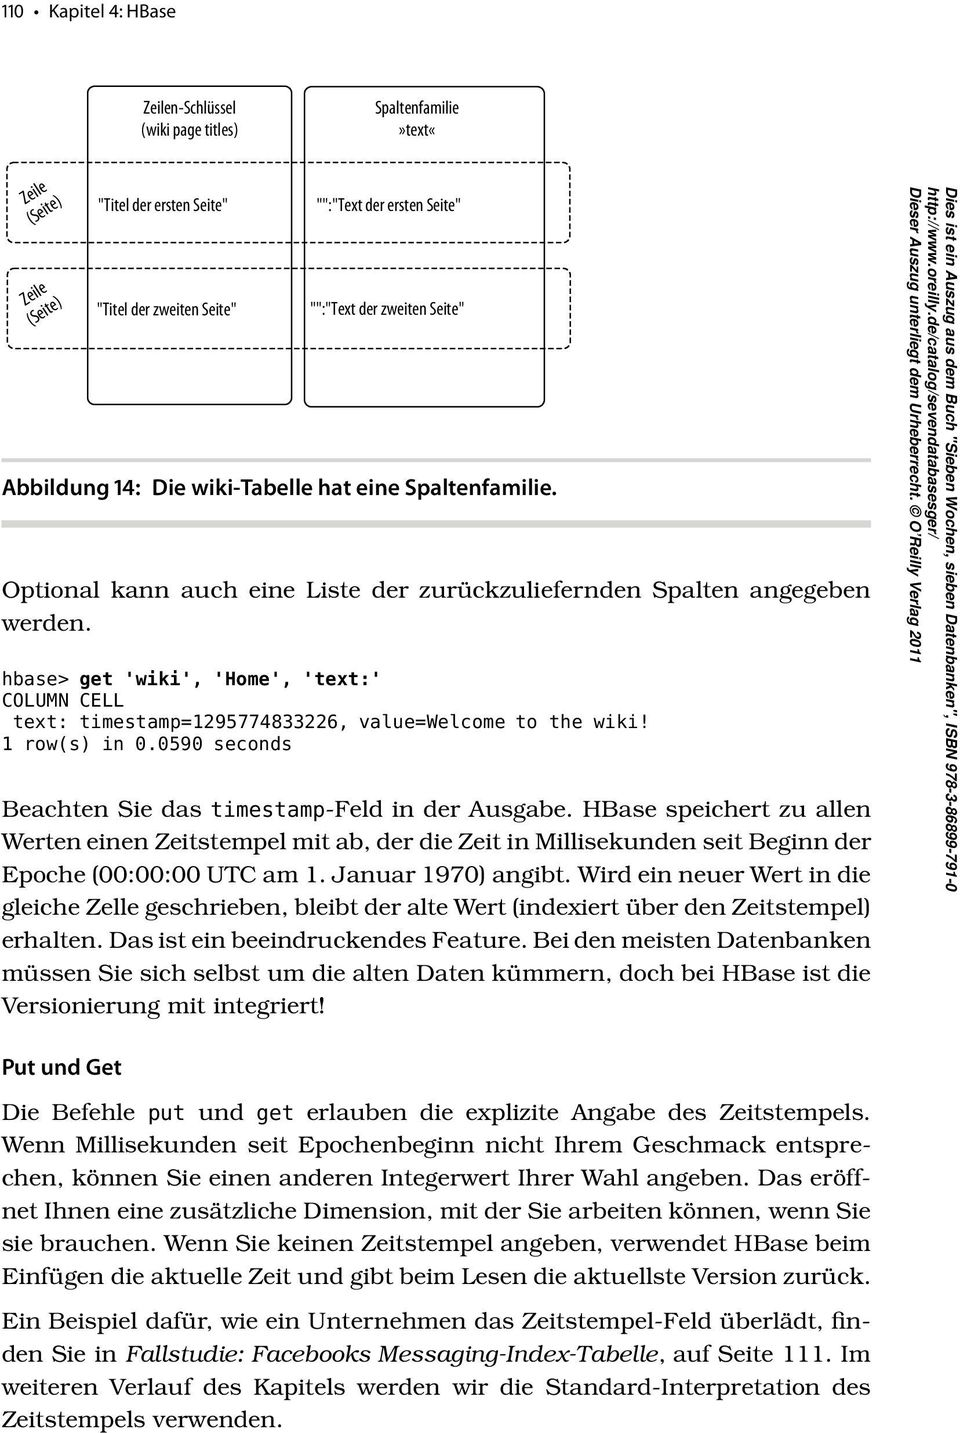 hbase> get 'wiki', 'Home', 'text:' COLUMN CELL text: timestamp=1295774833226, value=welcome to the wiki! 1 row(s) in 0.0590 seconds Beachten Sie das timestamp-feld in der Ausgabe.